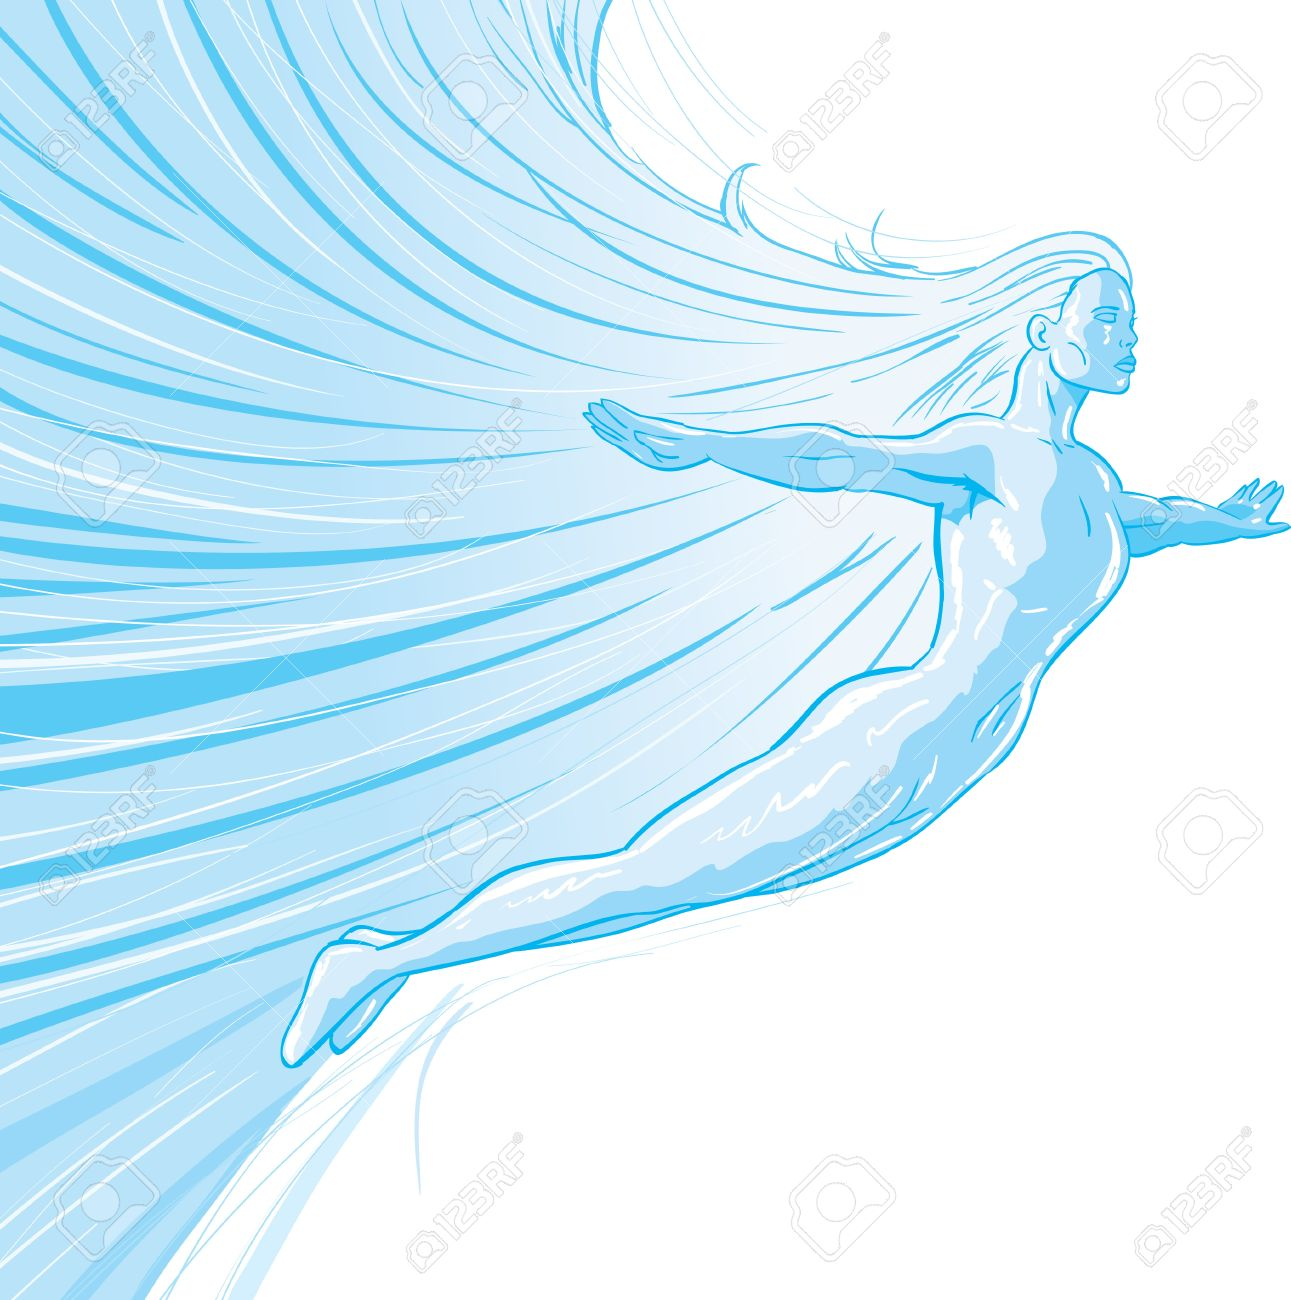 Ice Superhero Drawing Drawing of a Flying Ice